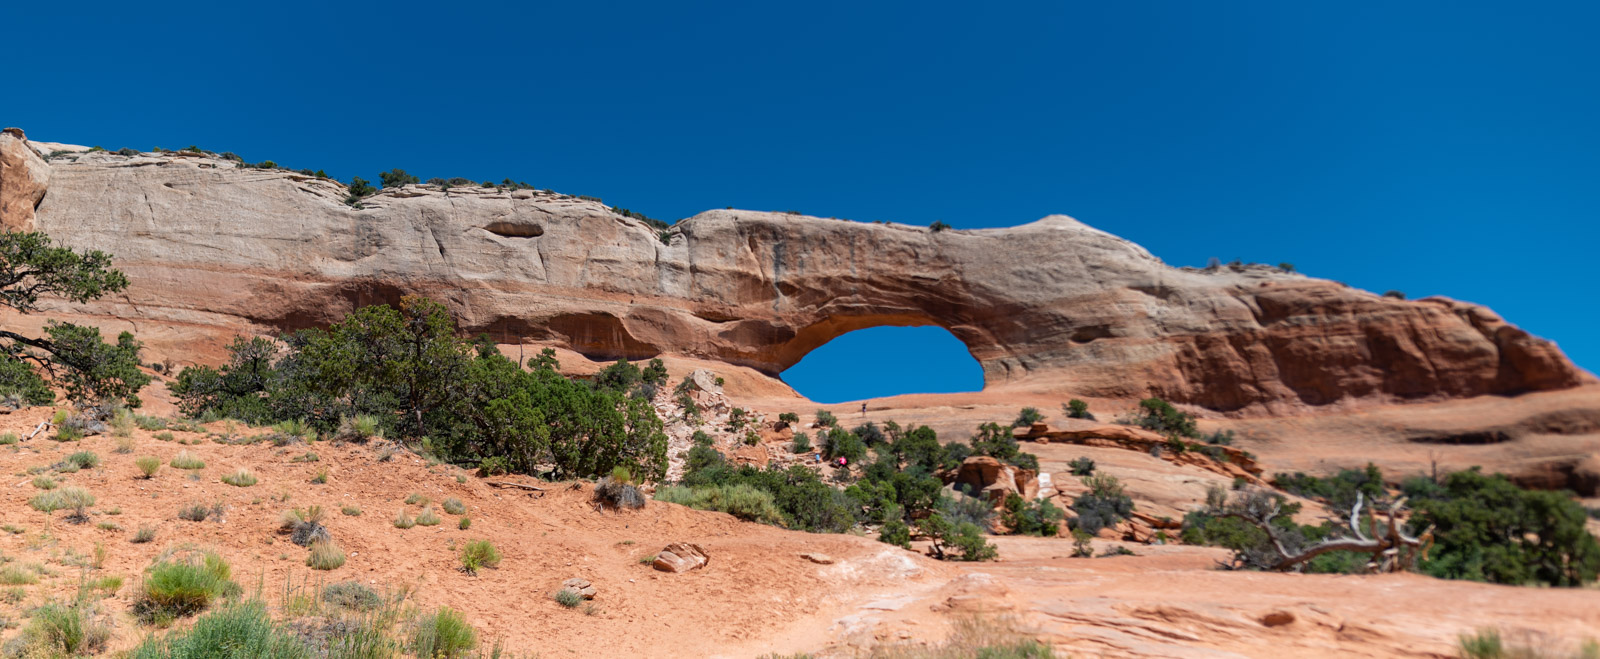 Wilson Arch, just south of Moab